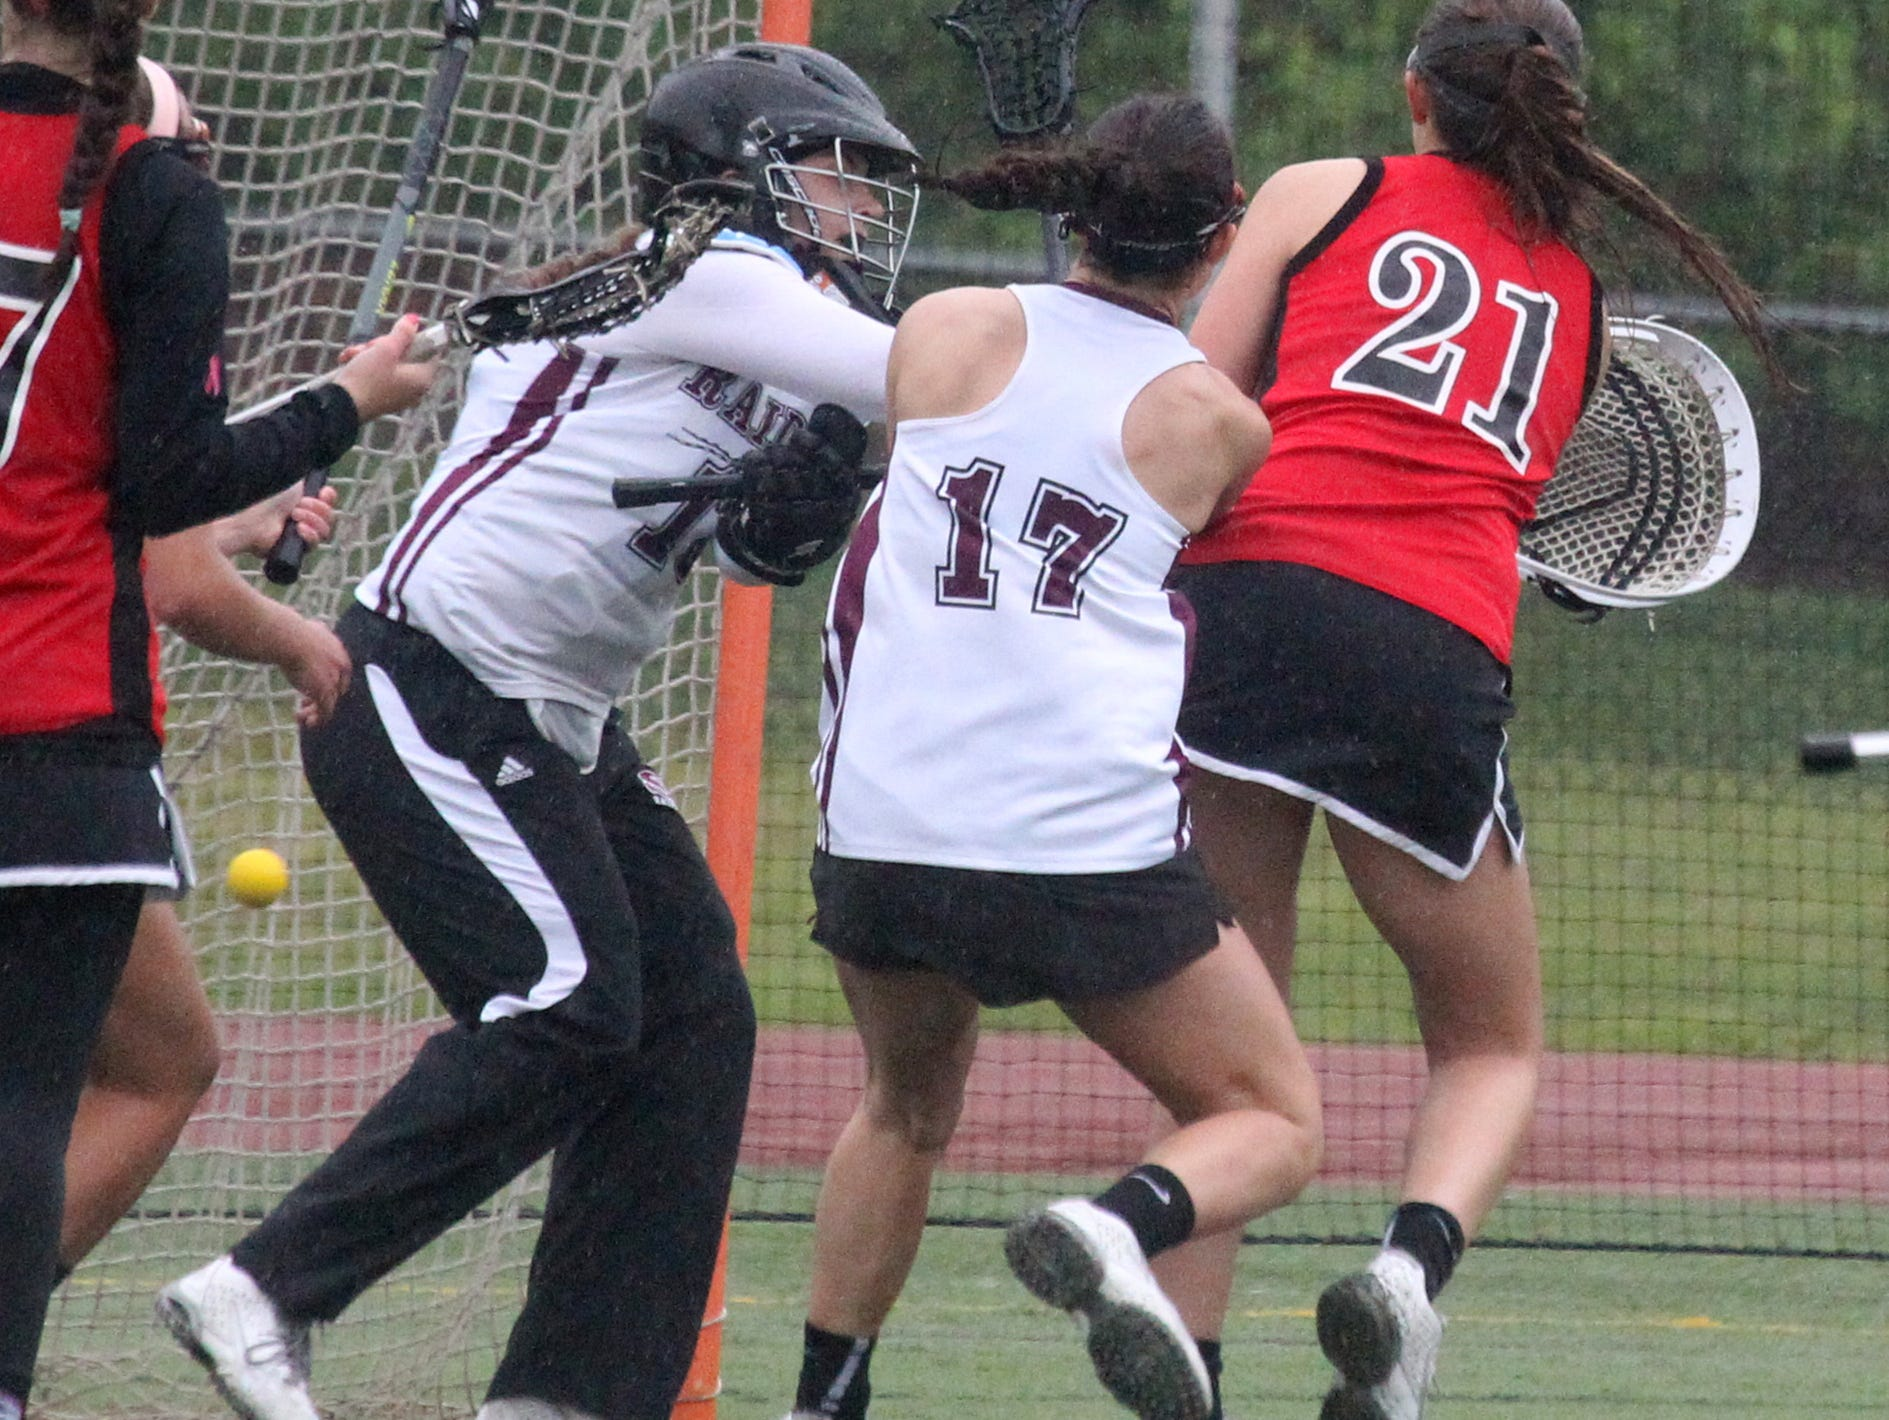 Rye's Abby Abate (21) scores past Scarsdale goalie Angie Burns at Scarsdale May 13, 2016. Rye won 10-9.